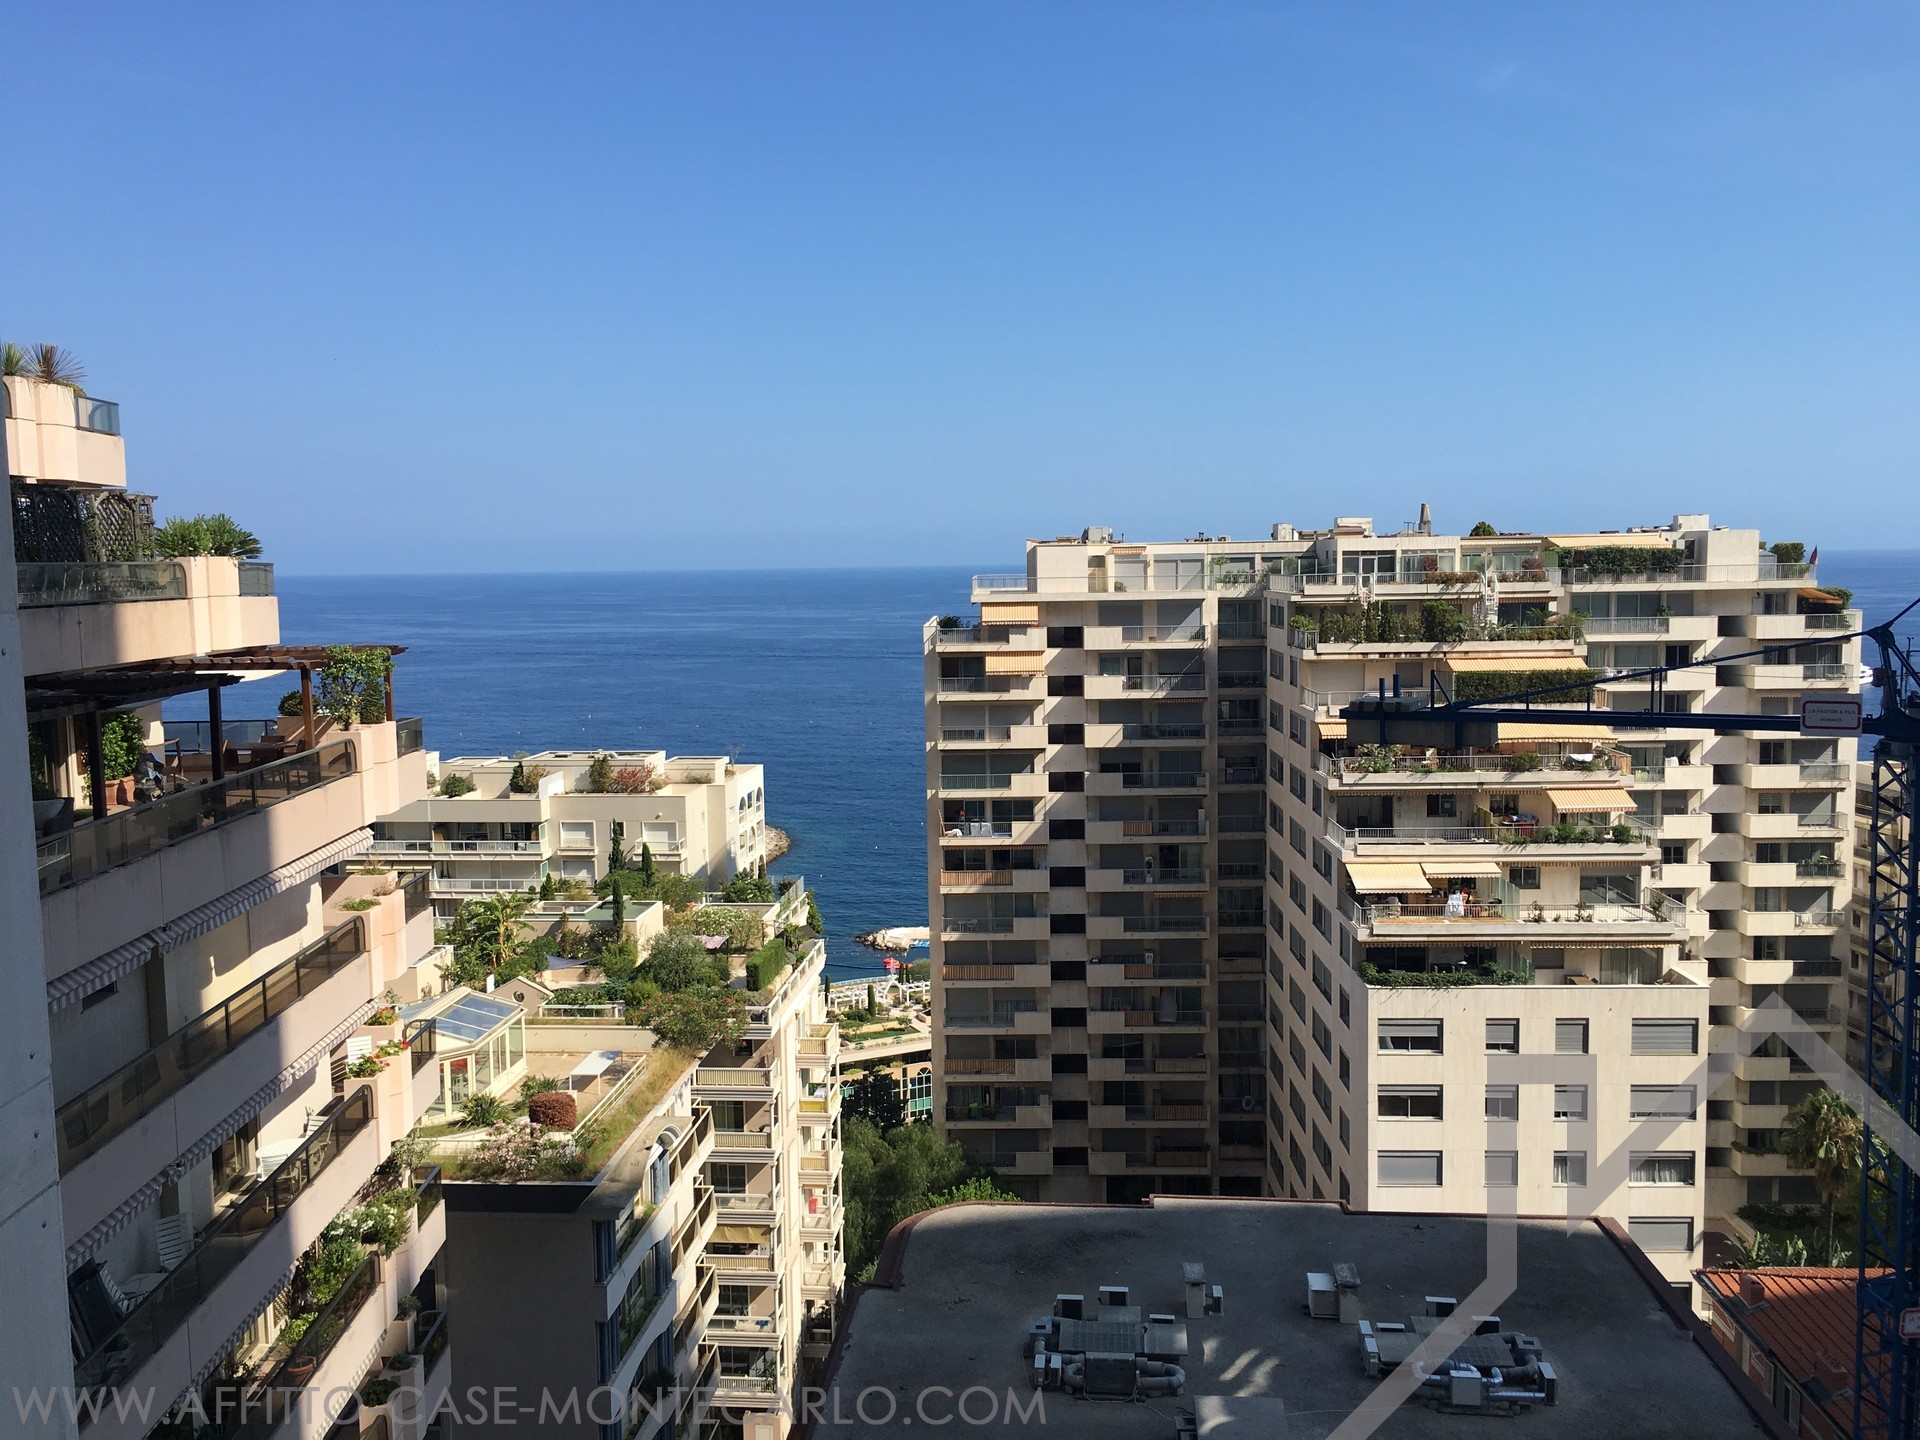 3 rooms apartment - Château Périgord II - Apartments for rent in Monaco